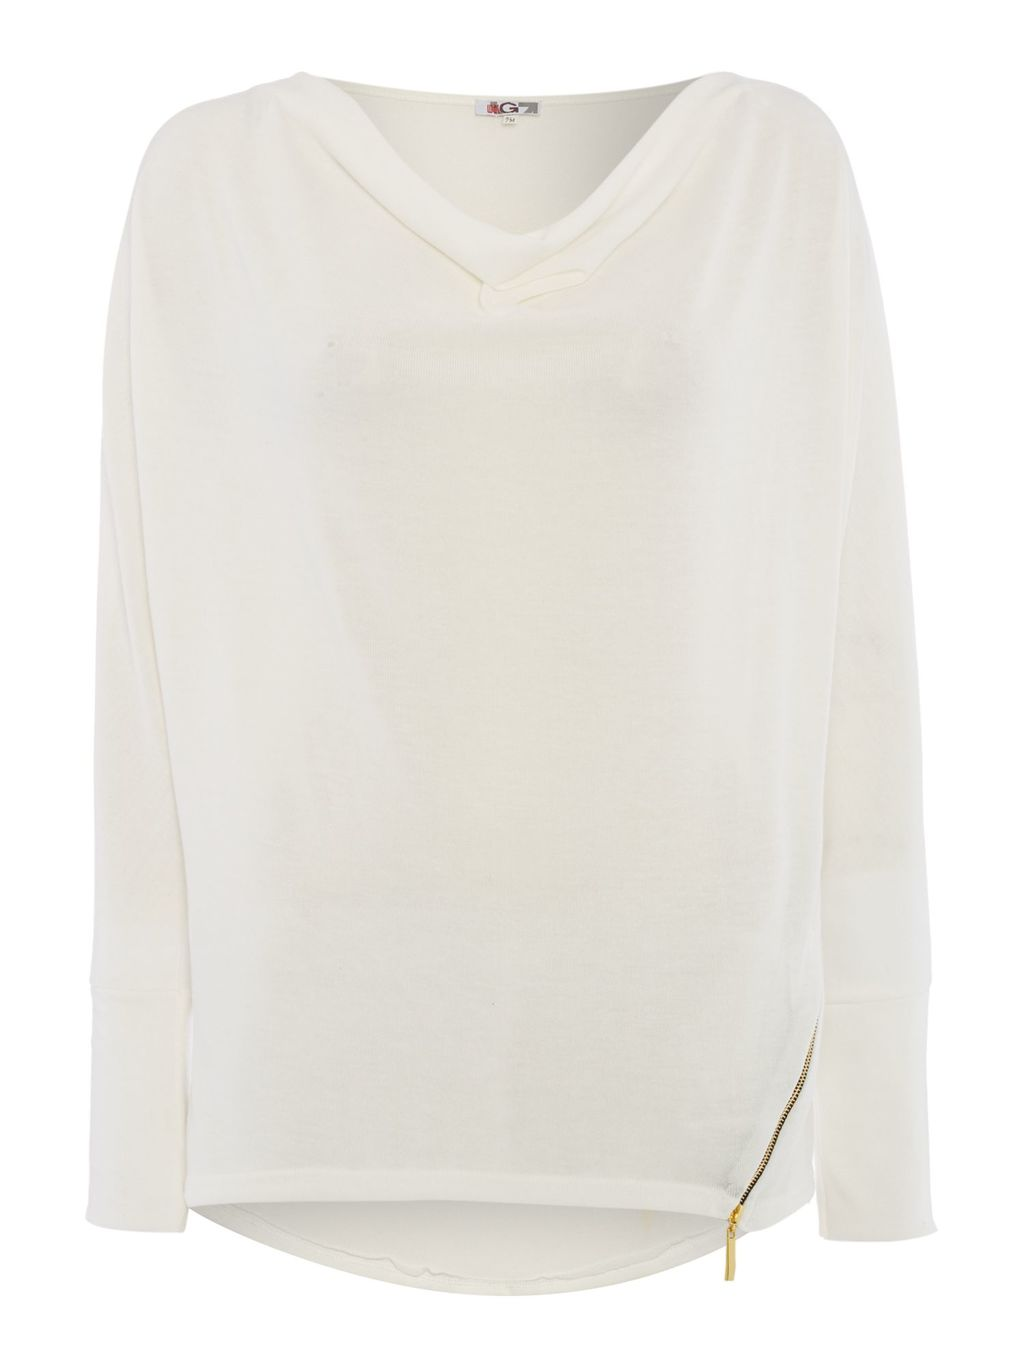 Long Sleeved Knit With Zip Detail, White - neckline: v-neck; pattern: plain; length: below the bottom; style: standard; predominant colour: white; occasions: casual, creative work; fibres: viscose/rayon - stretch; fit: loose; back detail: longer hem at back than at front; sleeve length: long sleeve; sleeve style: standard; texture group: knits/crochet; pattern type: knitted - fine stitch; season: s/s 2016; wardrobe: highlight; embellishment location: hip